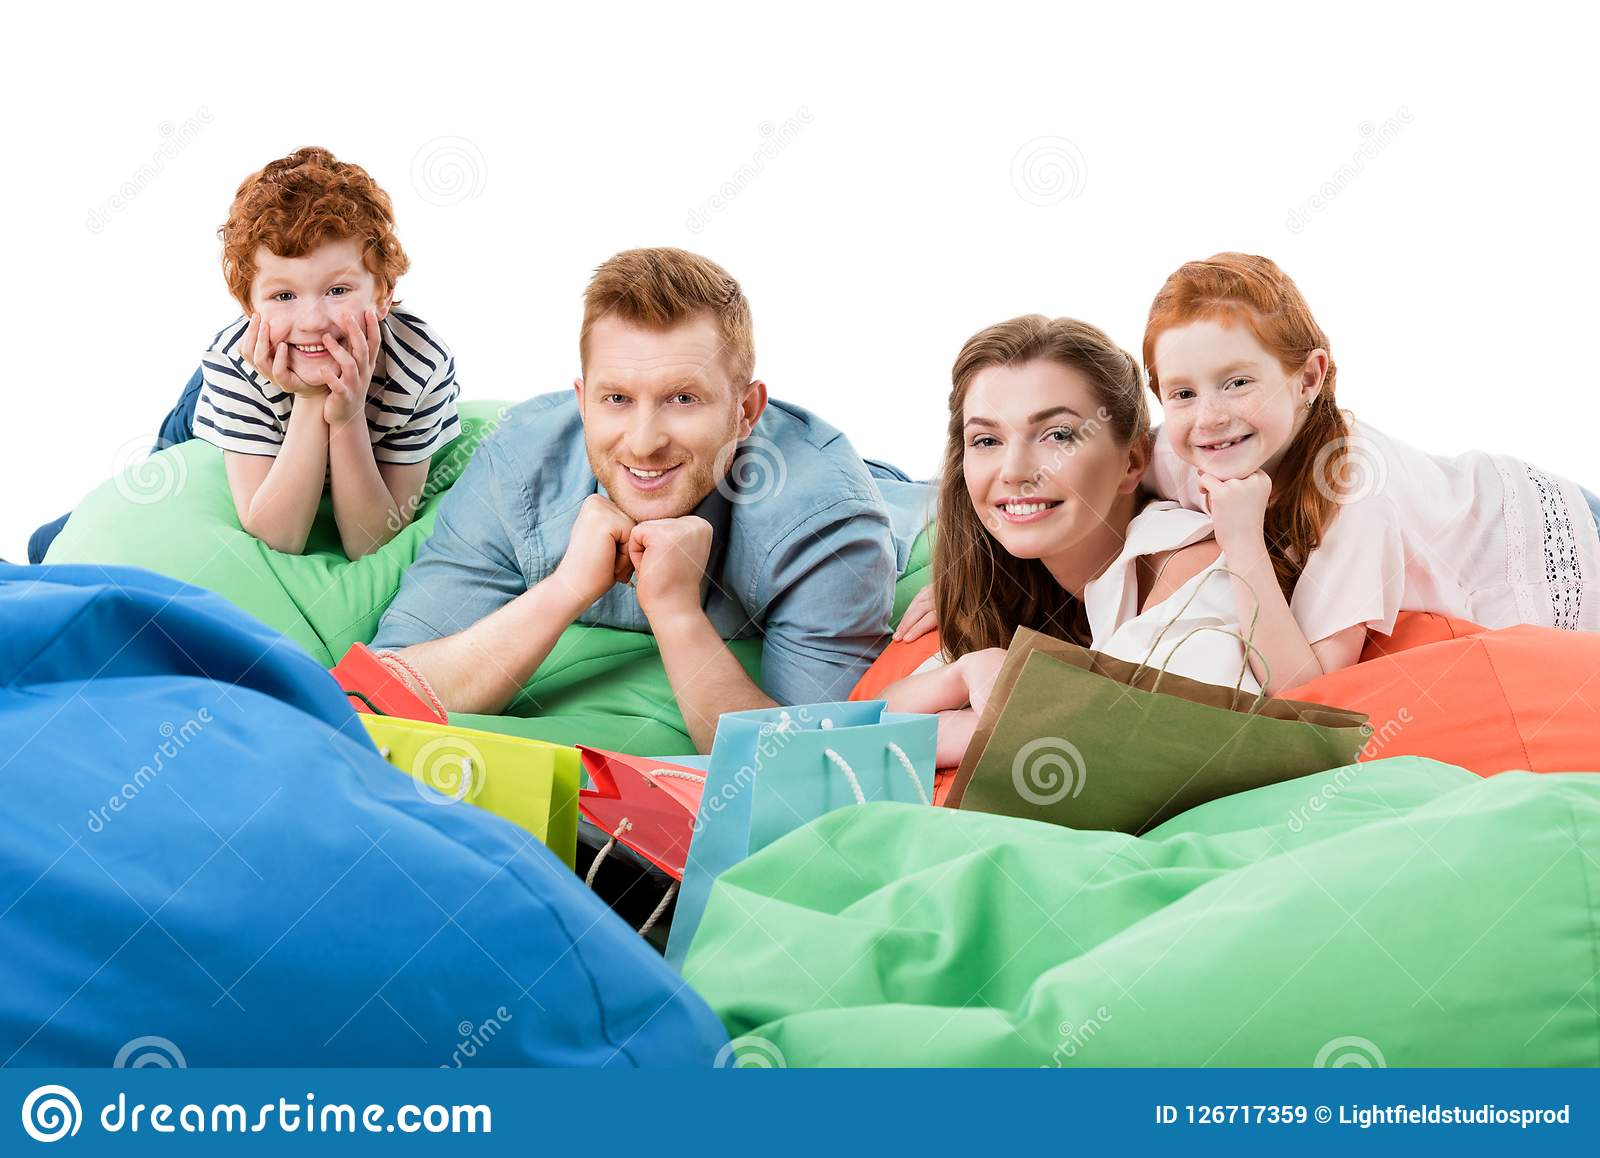 happy family with two children resting on bean bag chairs and smiling at camera after shopping